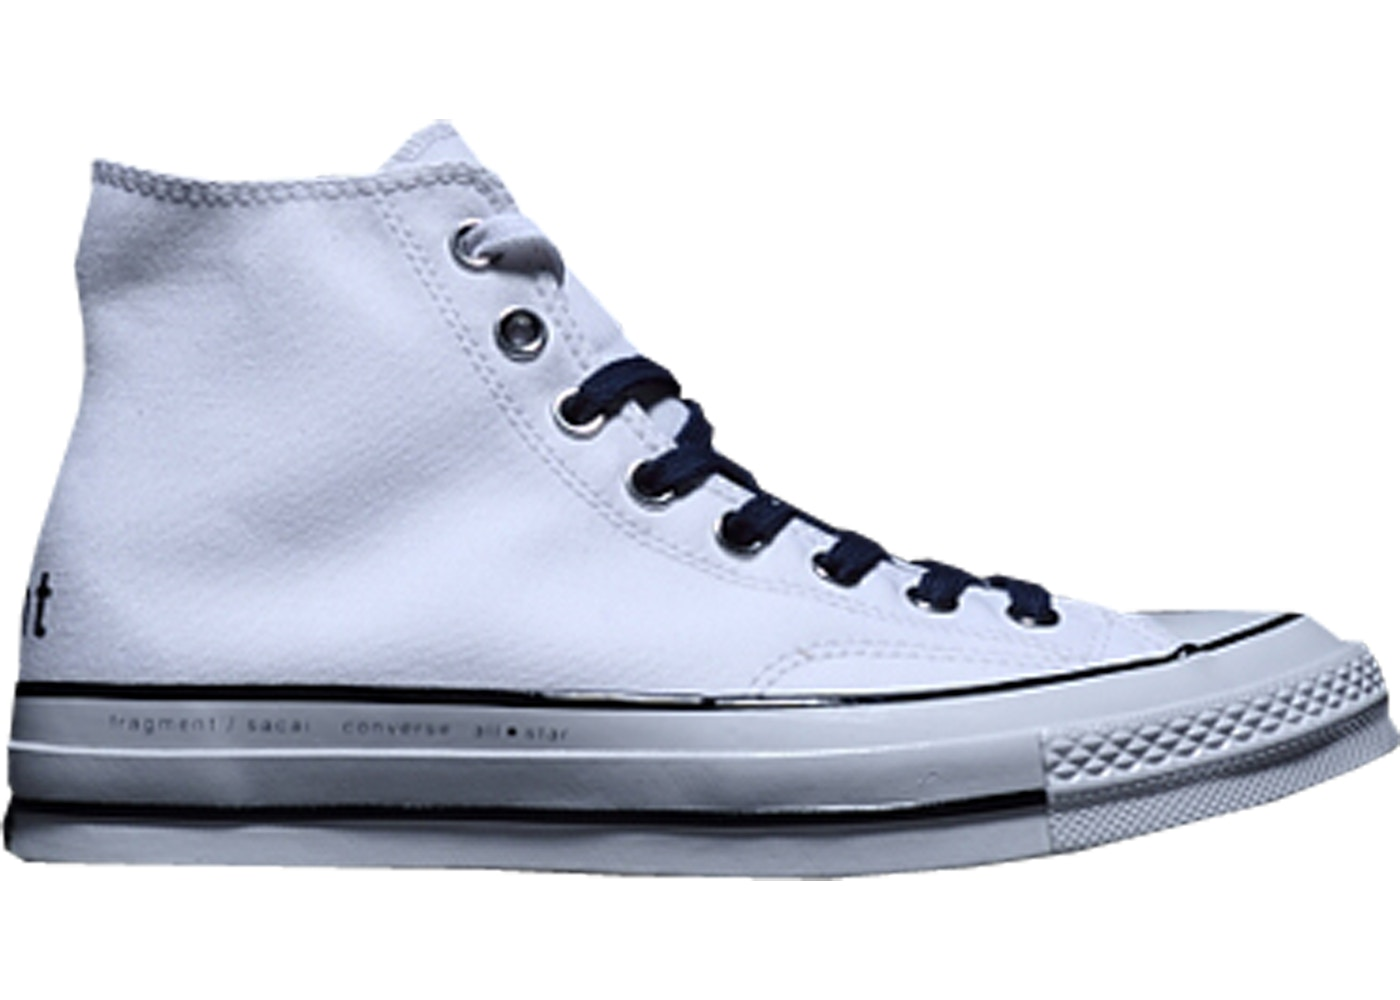 Converse Chuck Taylor All Star Hi sacai x fragment White